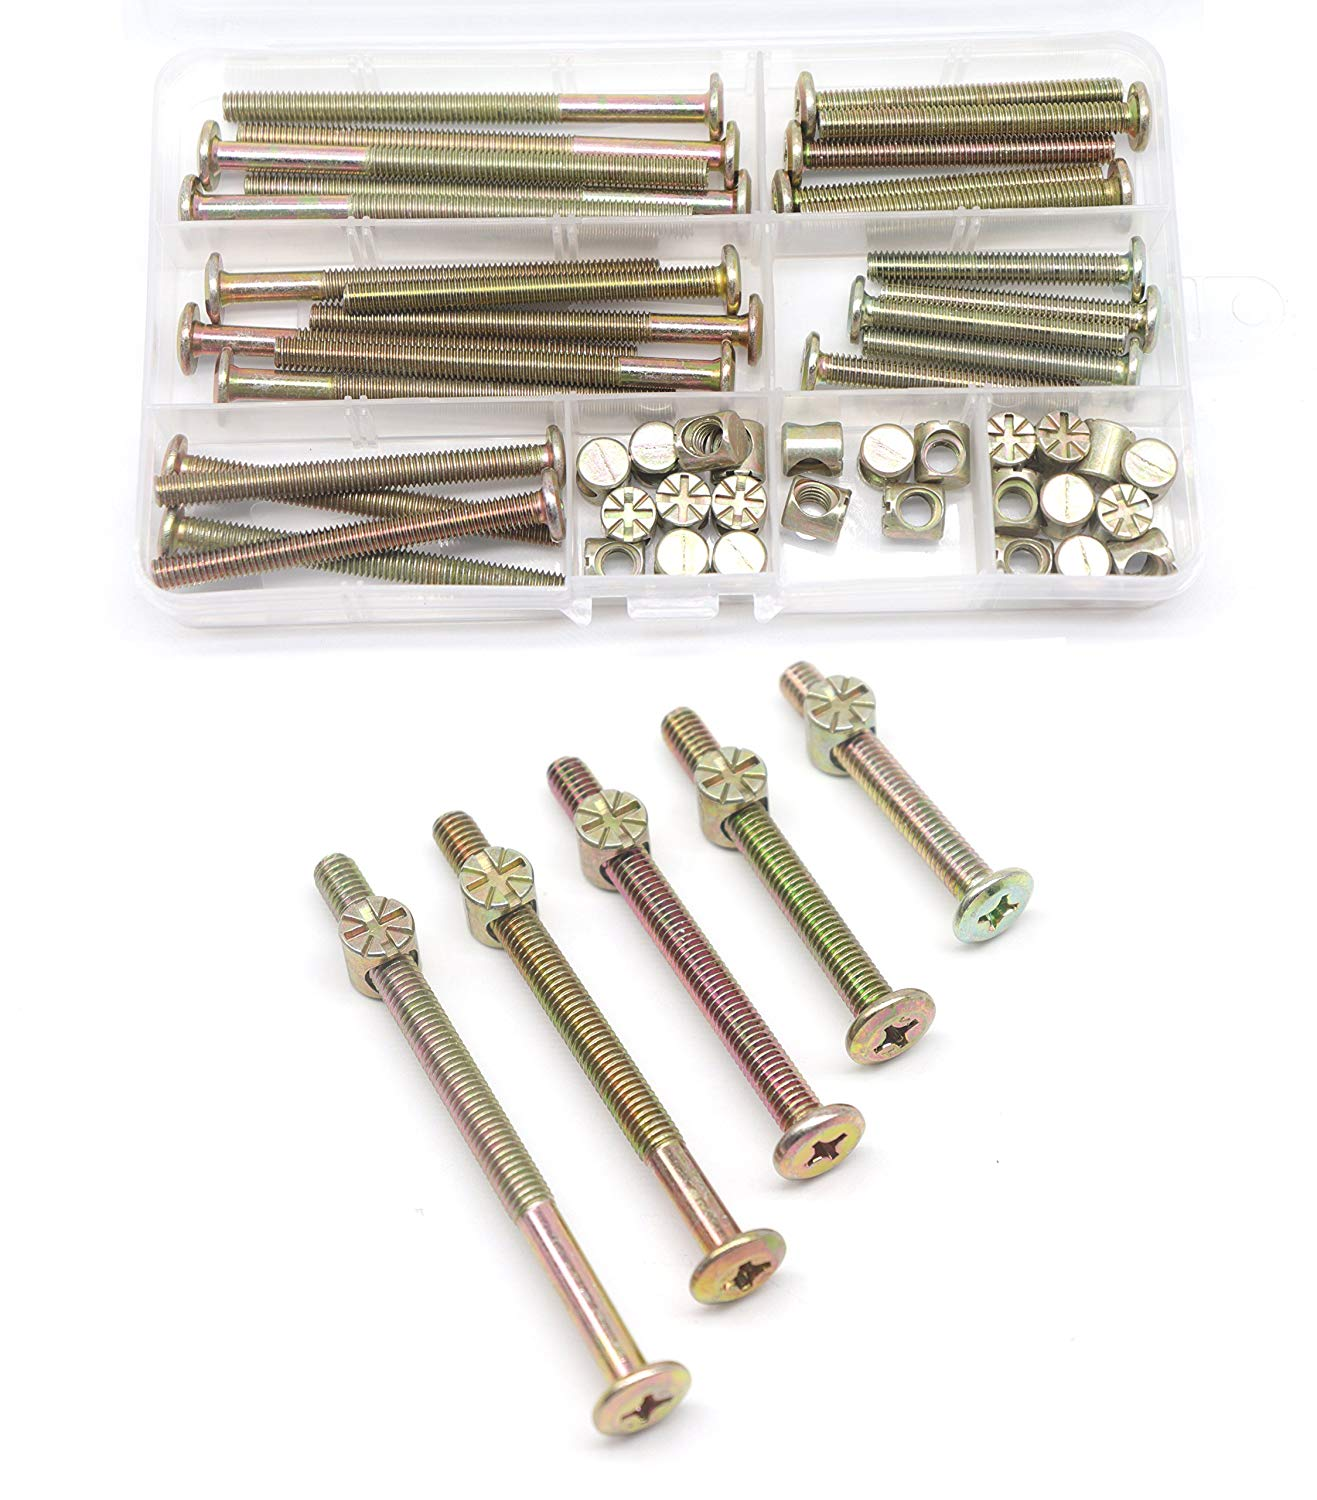 Cheap Barrel Nuts And Bolts Find Barrel Nuts And Bolts Deals On